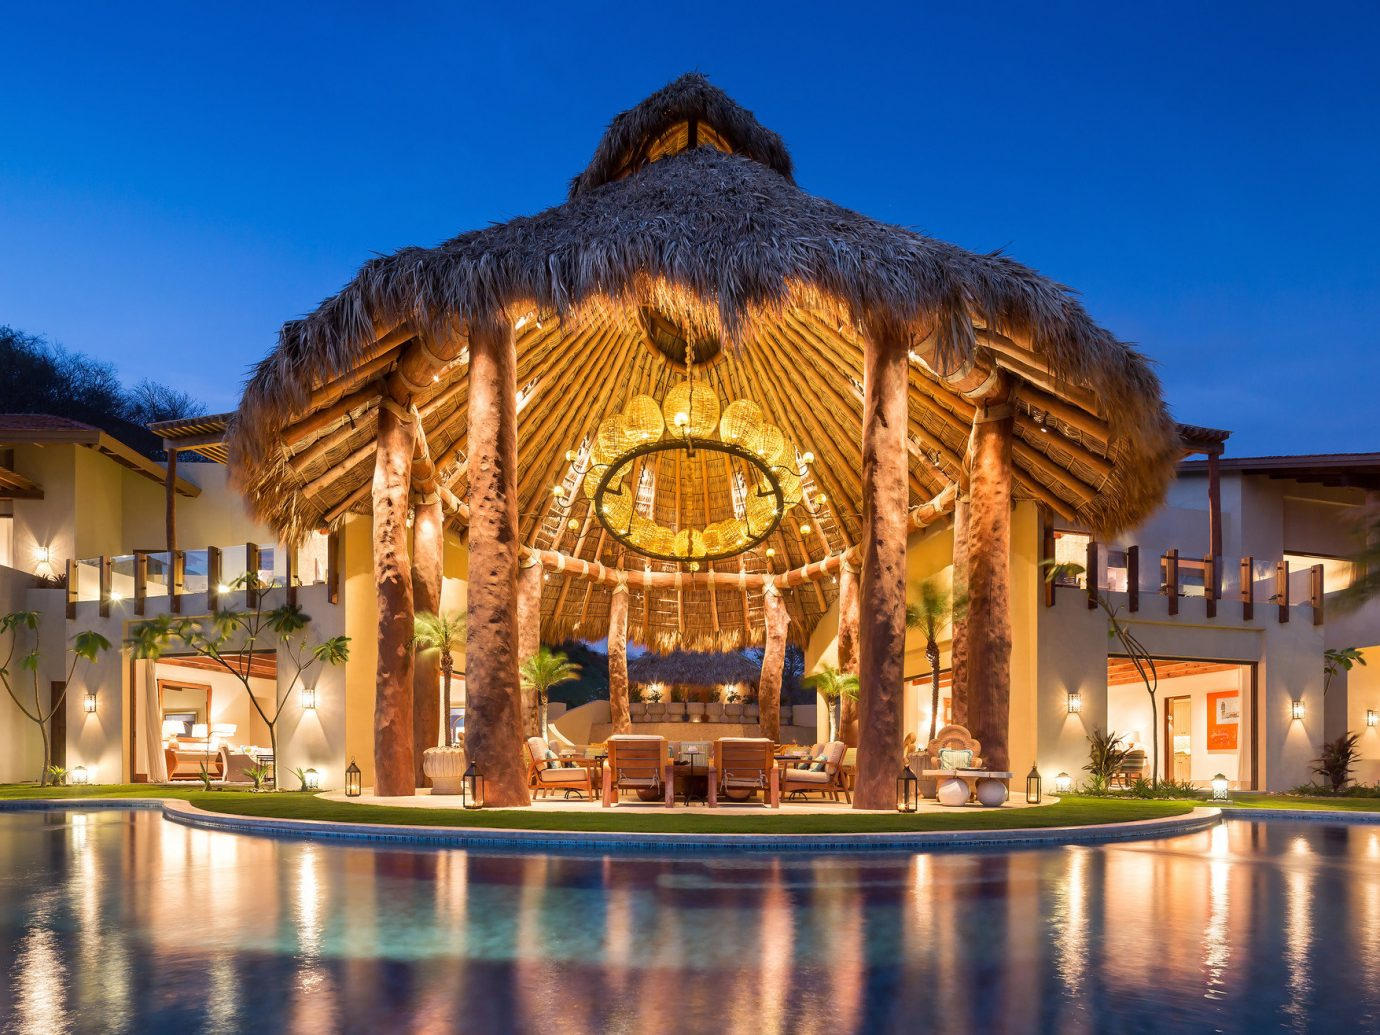 ambient lighting calm Elegant extravagant fancy Hotels hut Lounge Luxury night night lights open-air outdoor lounge outdoor pool Patio Pool porch regal Romance serene sophisticated Terrace outdoor landmark building estate palace Resort mansion